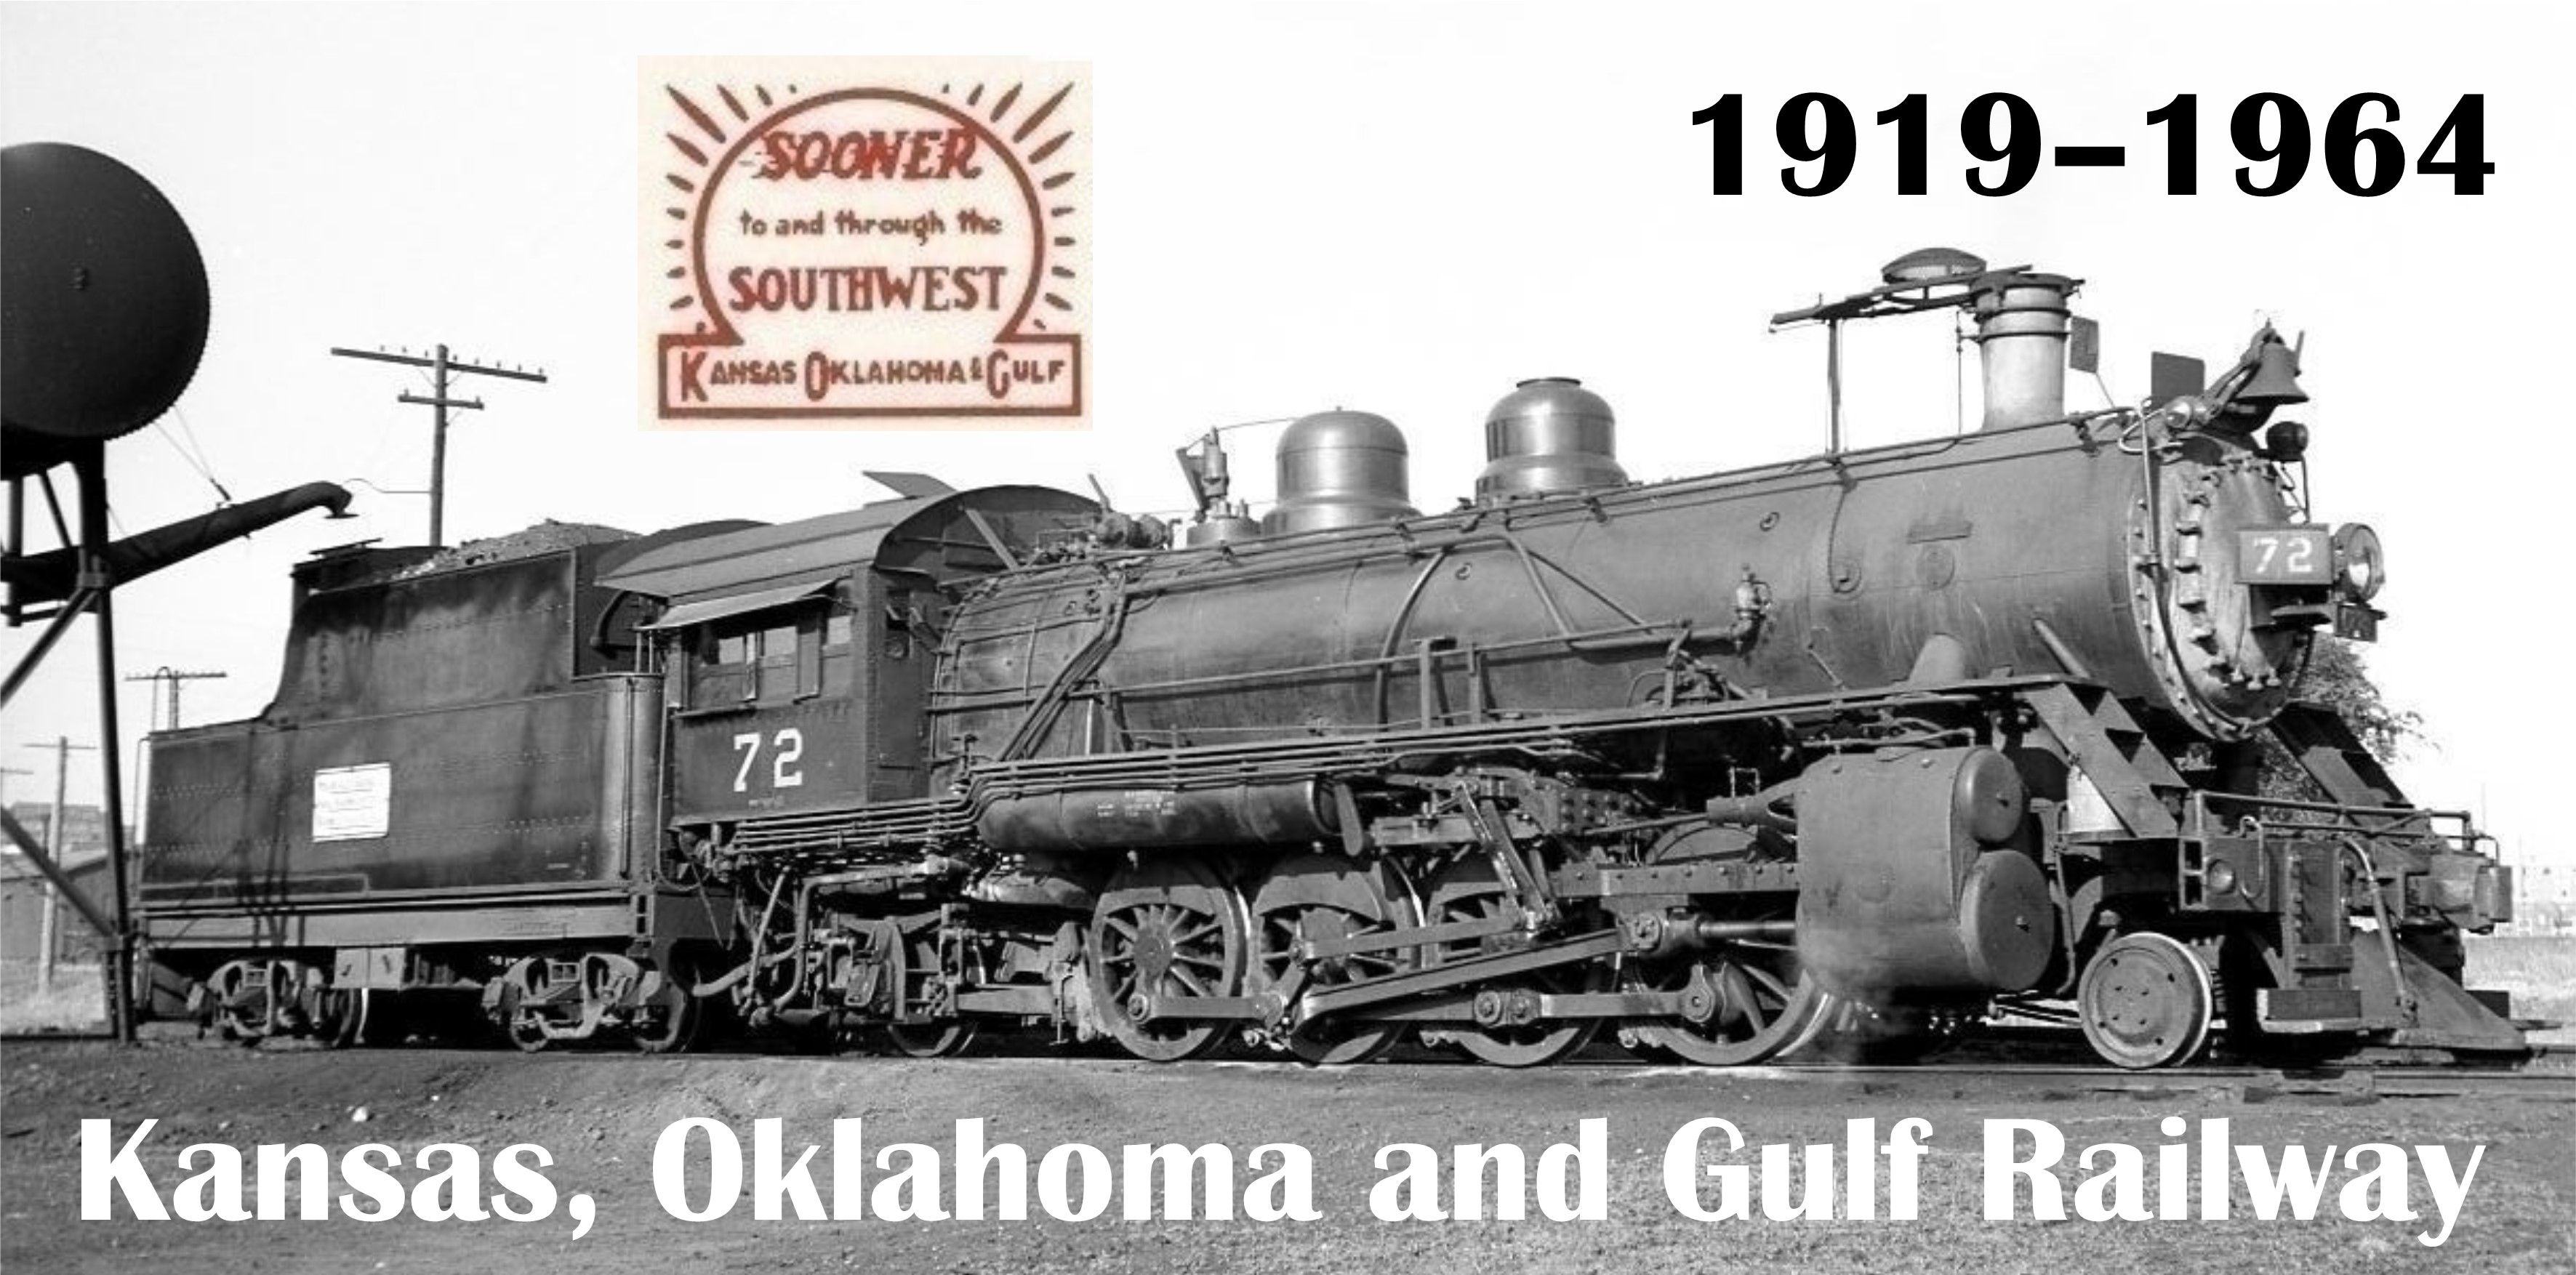 1919, Kansas, Oklahoma And Gulf Railway, Muskogee